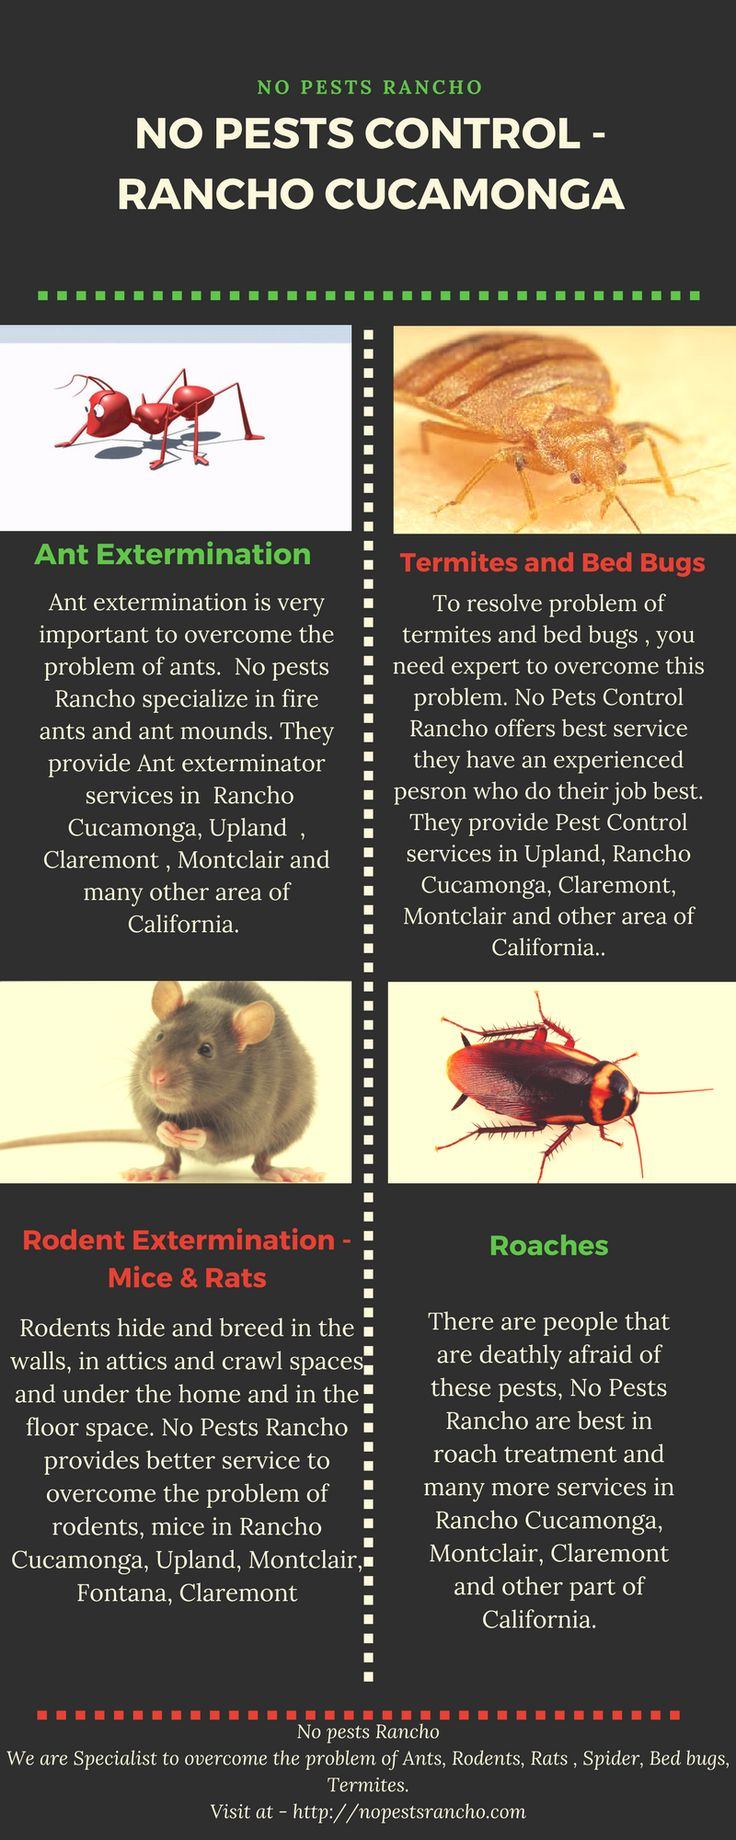 Get control of termites, ants and rat problem, No Pets Rancho provides you world best control  services, they have an expert for pest control at an affordable cost in the area of California. They also Provide their services for Ant Exterminator, rodents, mice, bees and wasps in both residential and commercial areas. http://nopestsrancho.com/